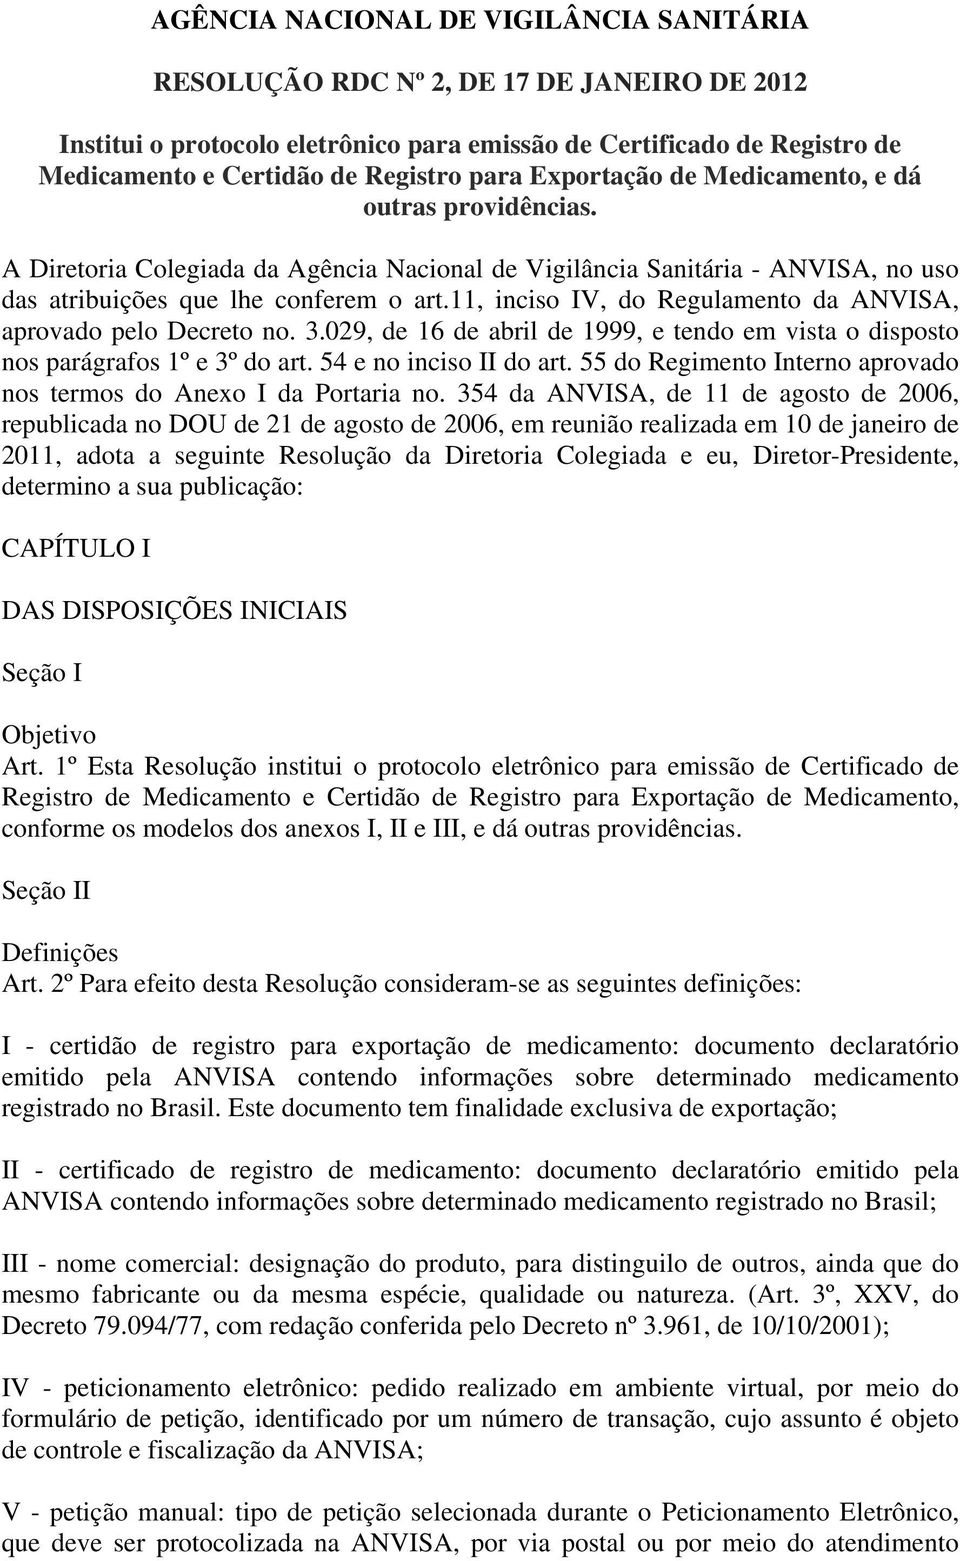 11, inciso IV, do Regulamento da ANVISA, aprovado pelo Decreto no. 3.029, de 16 de abril de 1999, e tendo em vista o disposto nos parágrafos 1º e 3º do art. 54 e no inciso II do art.